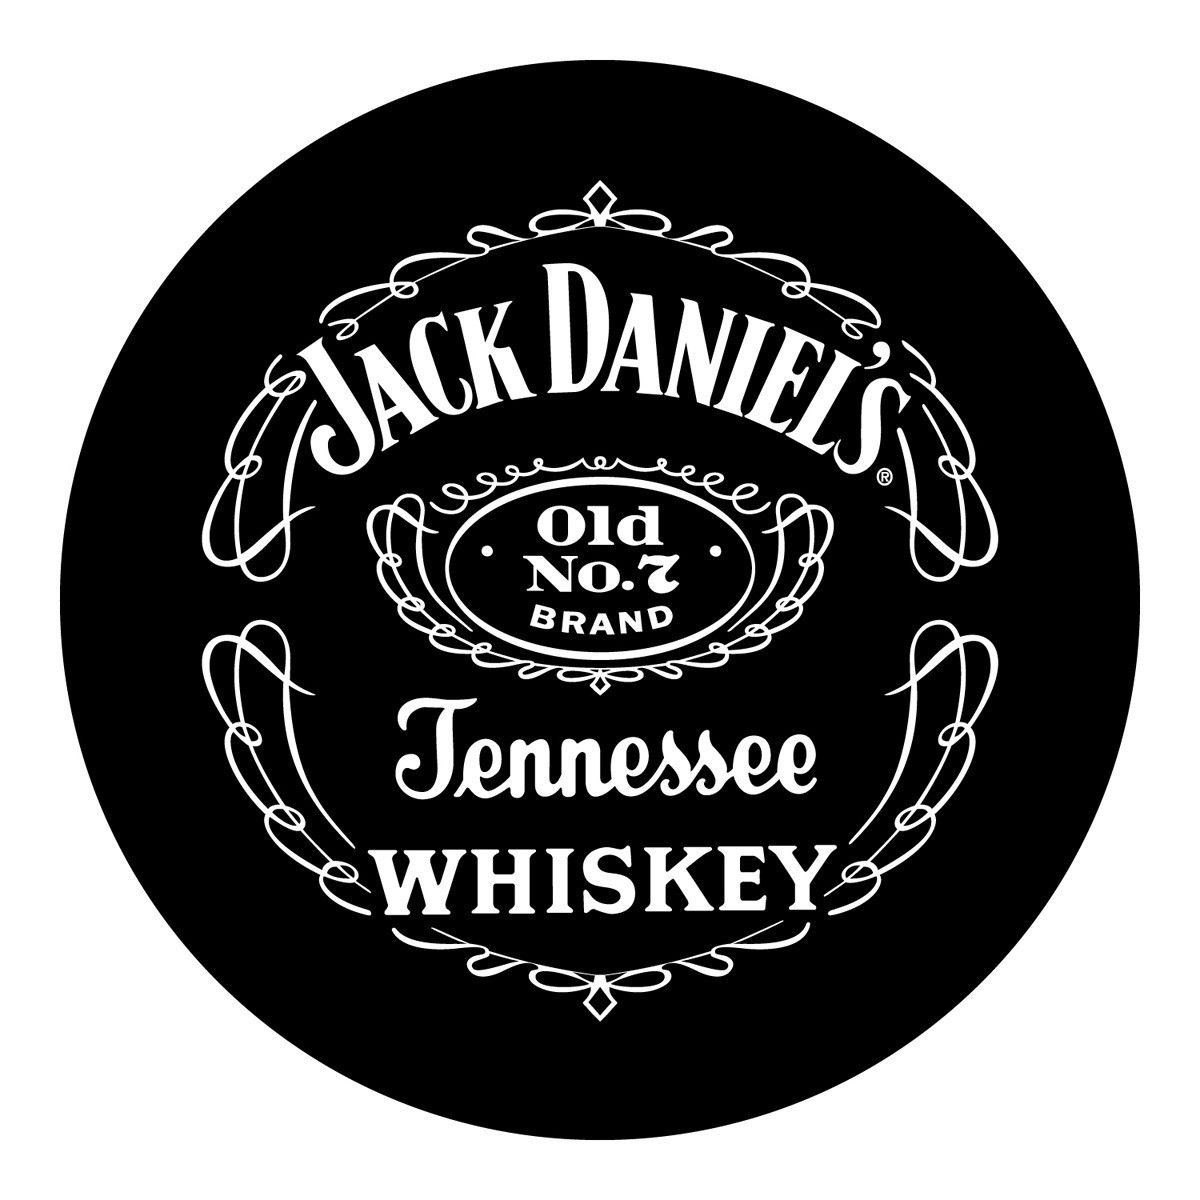 Jack daniels lifestyle products label 30 pinterest jack daniels lifestyle products label 30 voltagebd Gallery